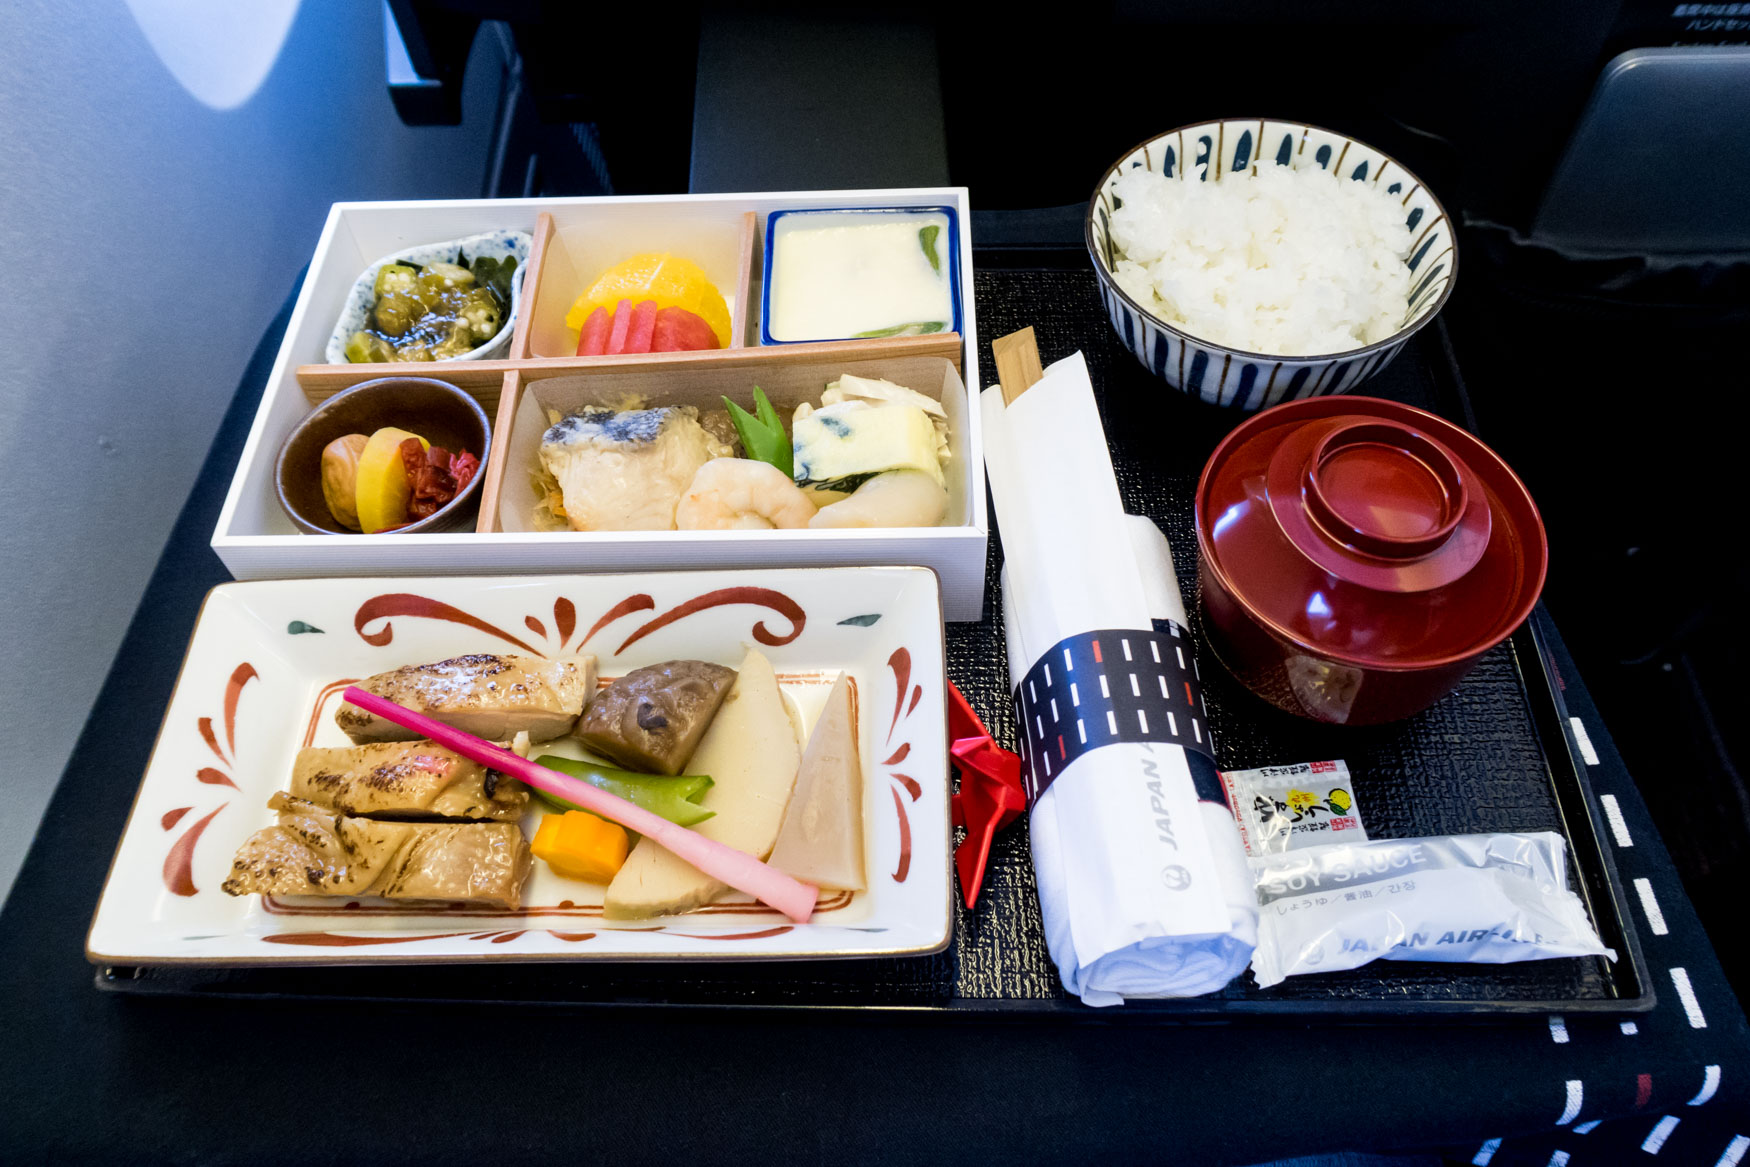 Flight Review: JAL 767-300ER from Jakarta CGK to Tokyo NRT in Business Class